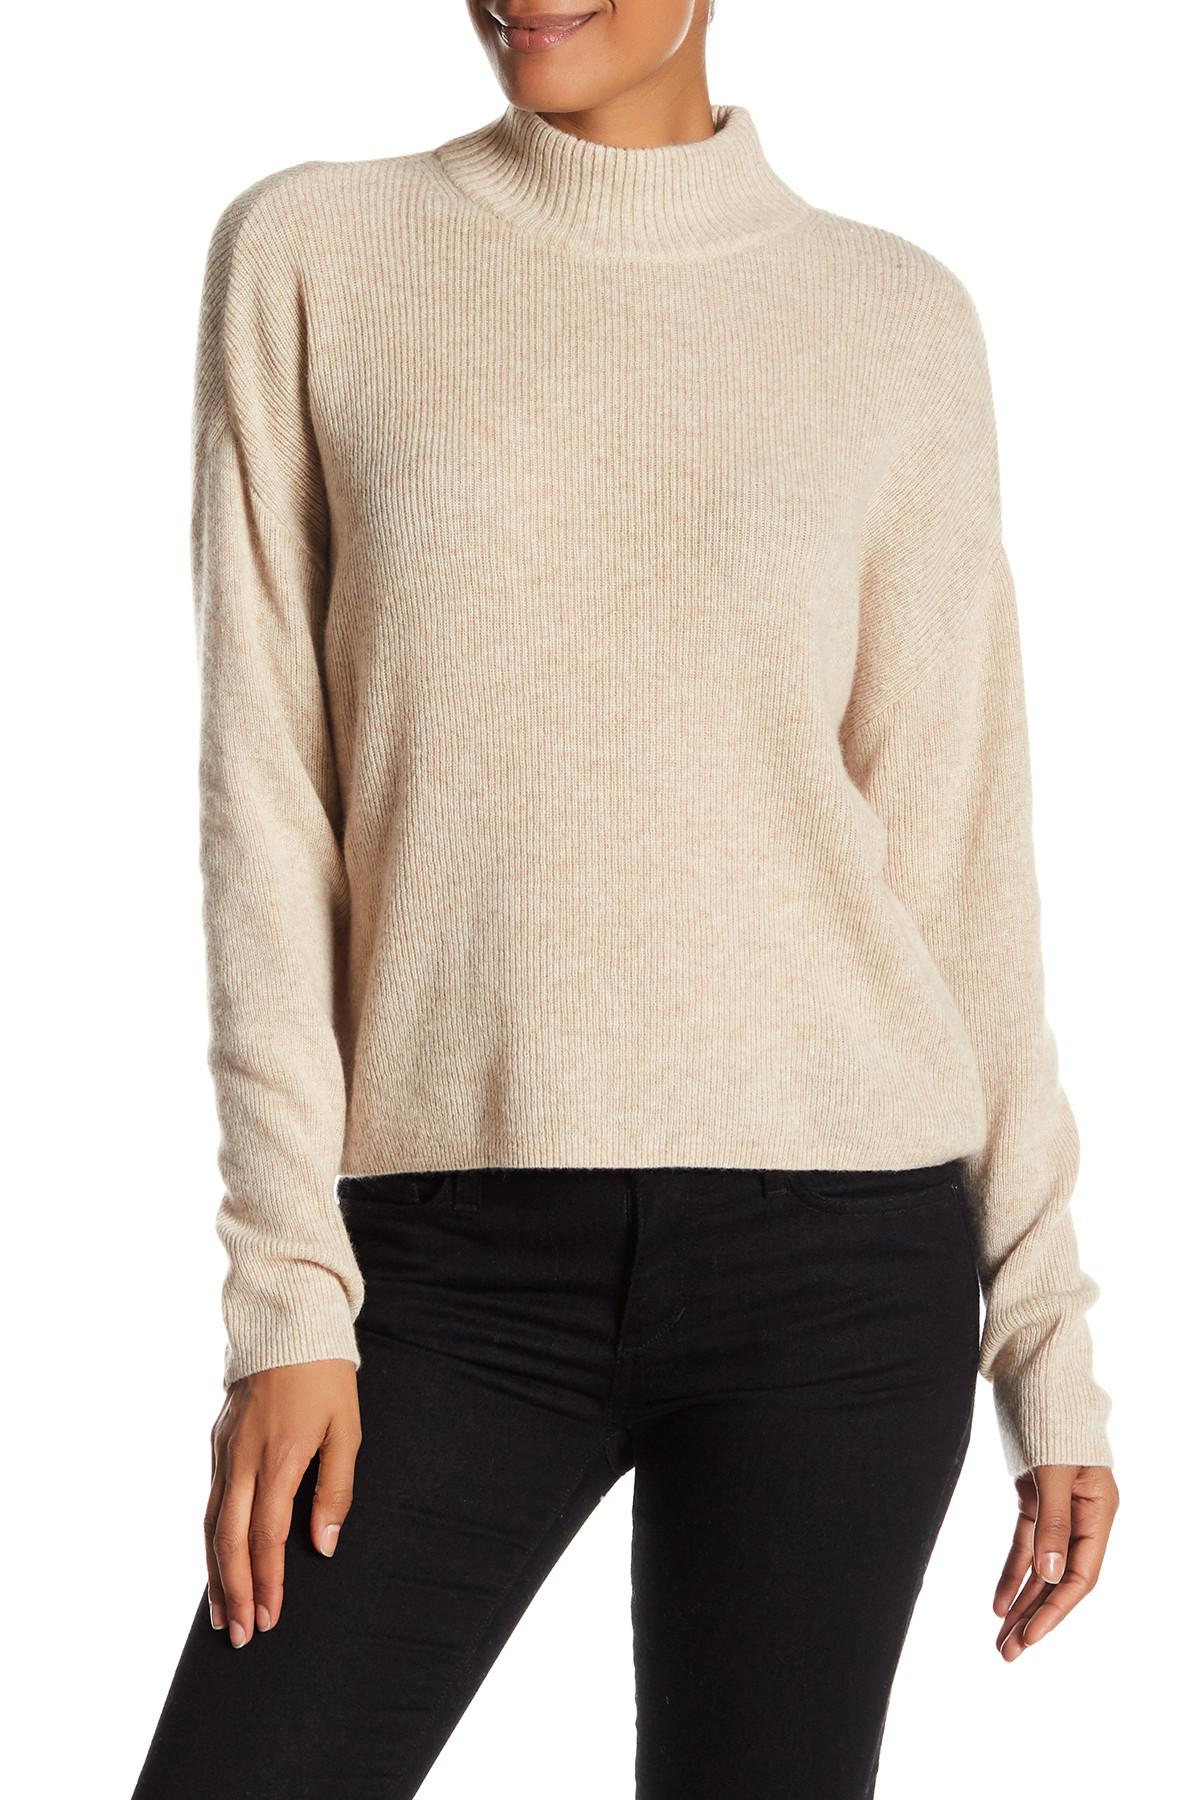 Catherine malandrino Crop Mock Neck Cashmere Sweater in Natural | Lyst